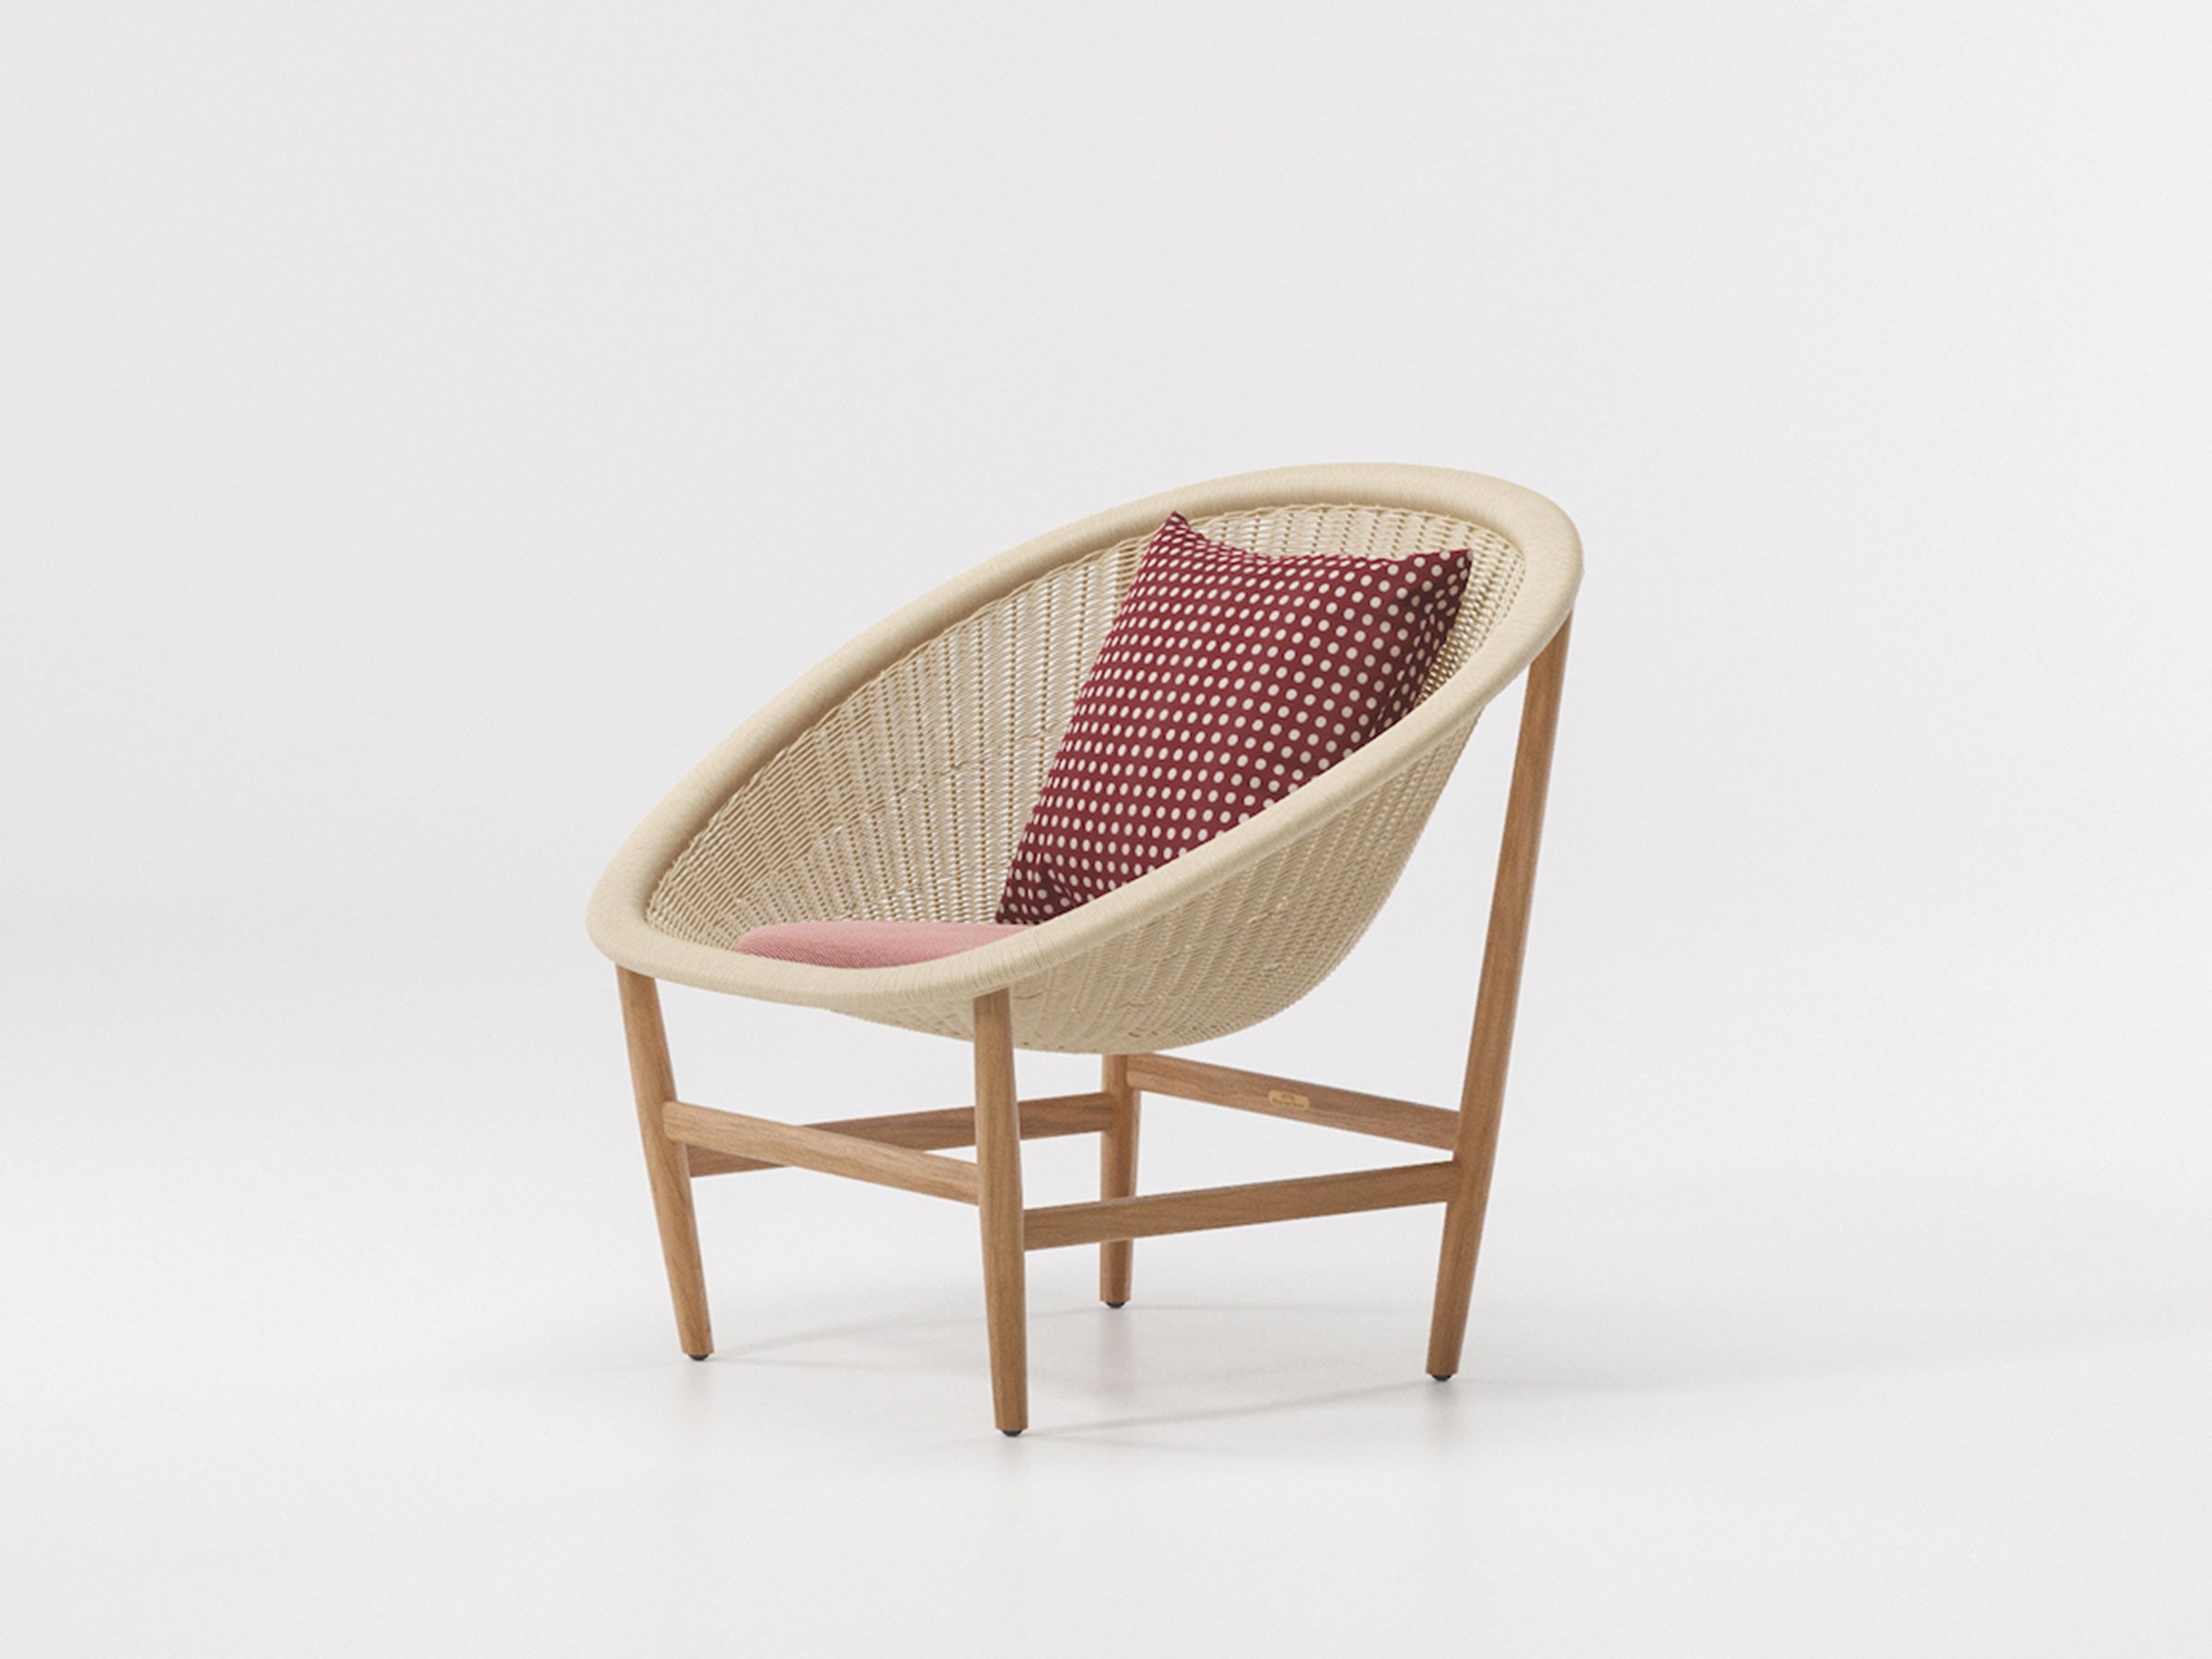 indoor basket kettal casulo curated shop